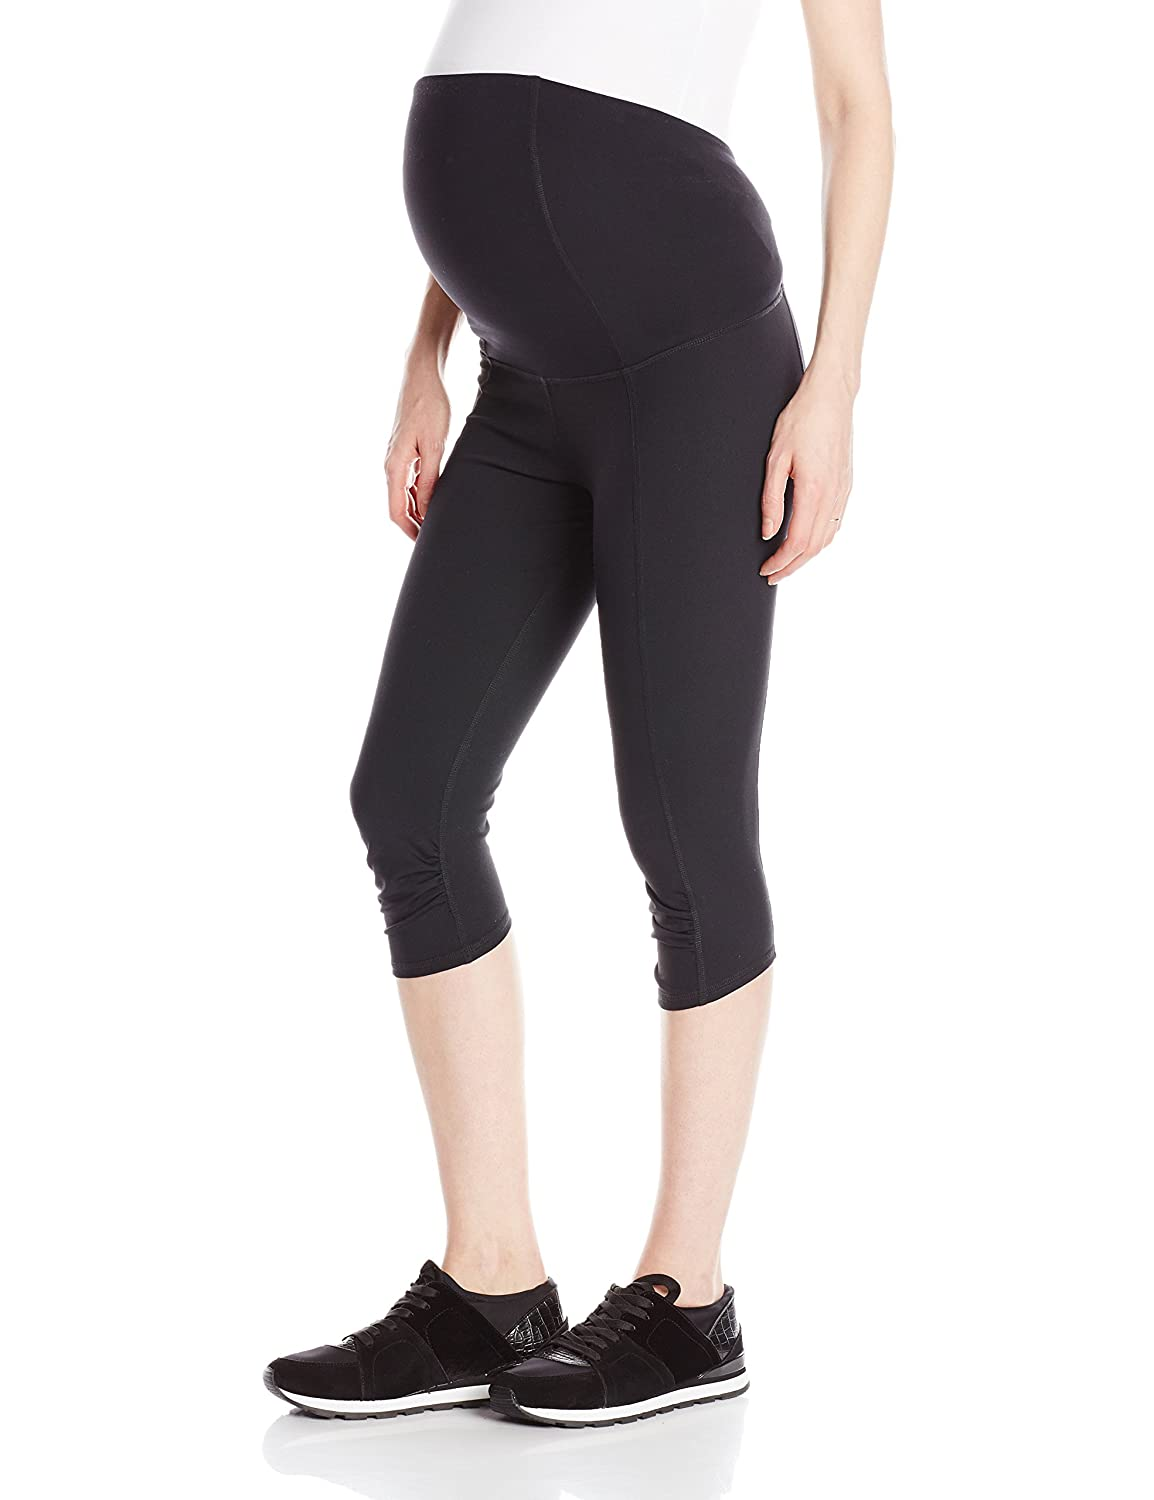 dfb1a6d621e9b Ingrid & Isabel Women's Maternity Crossover Panel Active Knee Pant at  Amazon Women's Clothing store: Fashion Maternity Leggings Pants